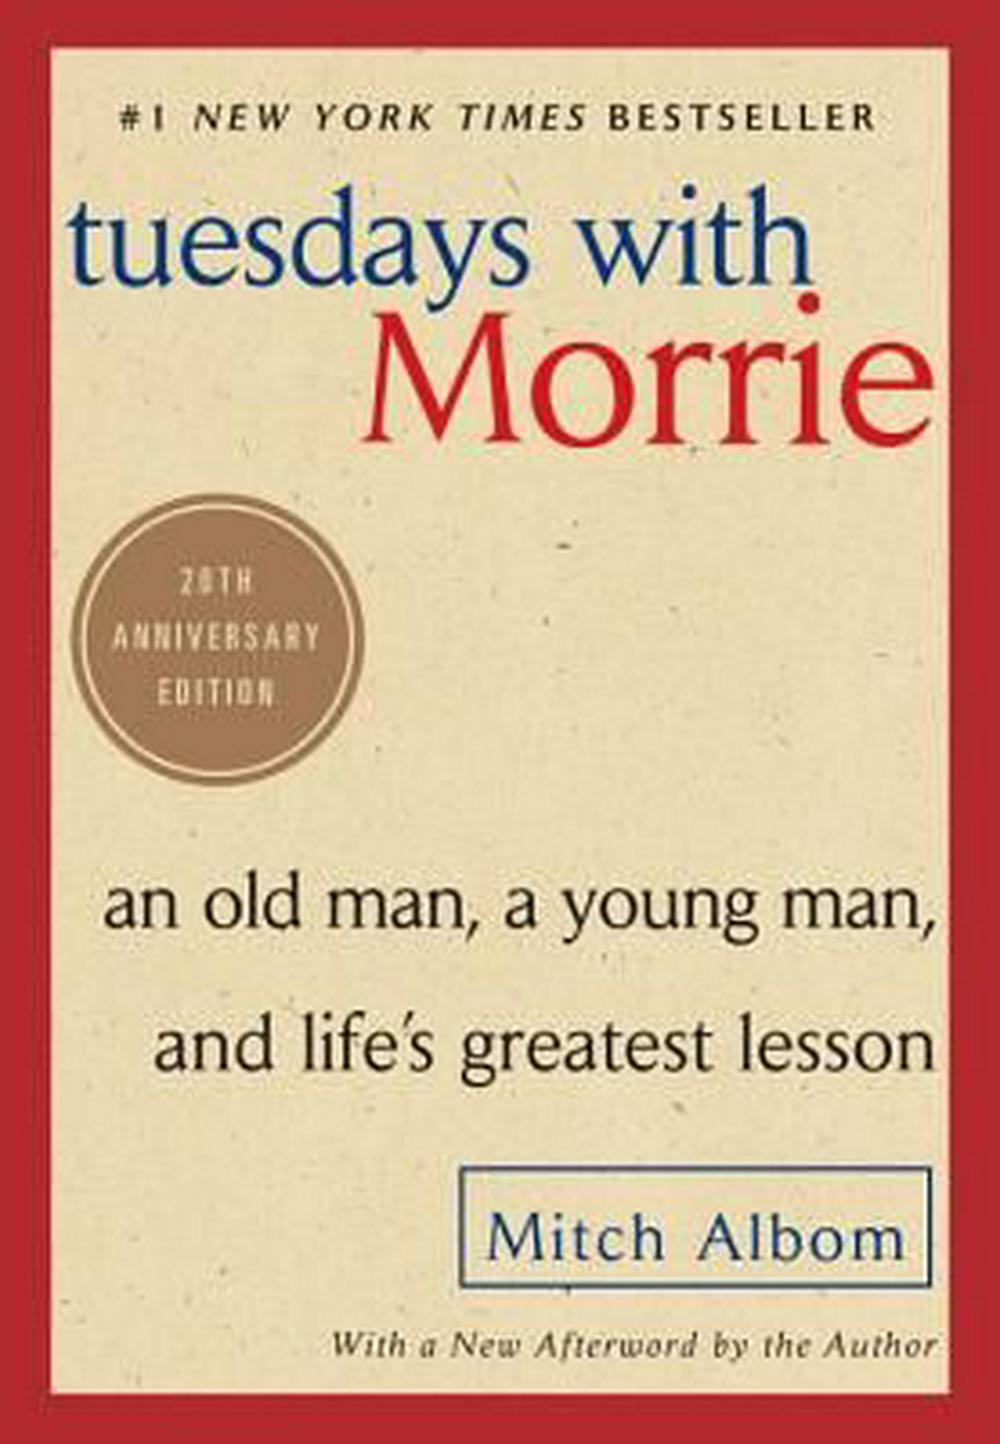 tuesdau with morrie Posts about sunday gospel reflection for the 30th sunday in ordinary time written by dr richard teo ended his talk with a quote from the book tuesdays with morrie.